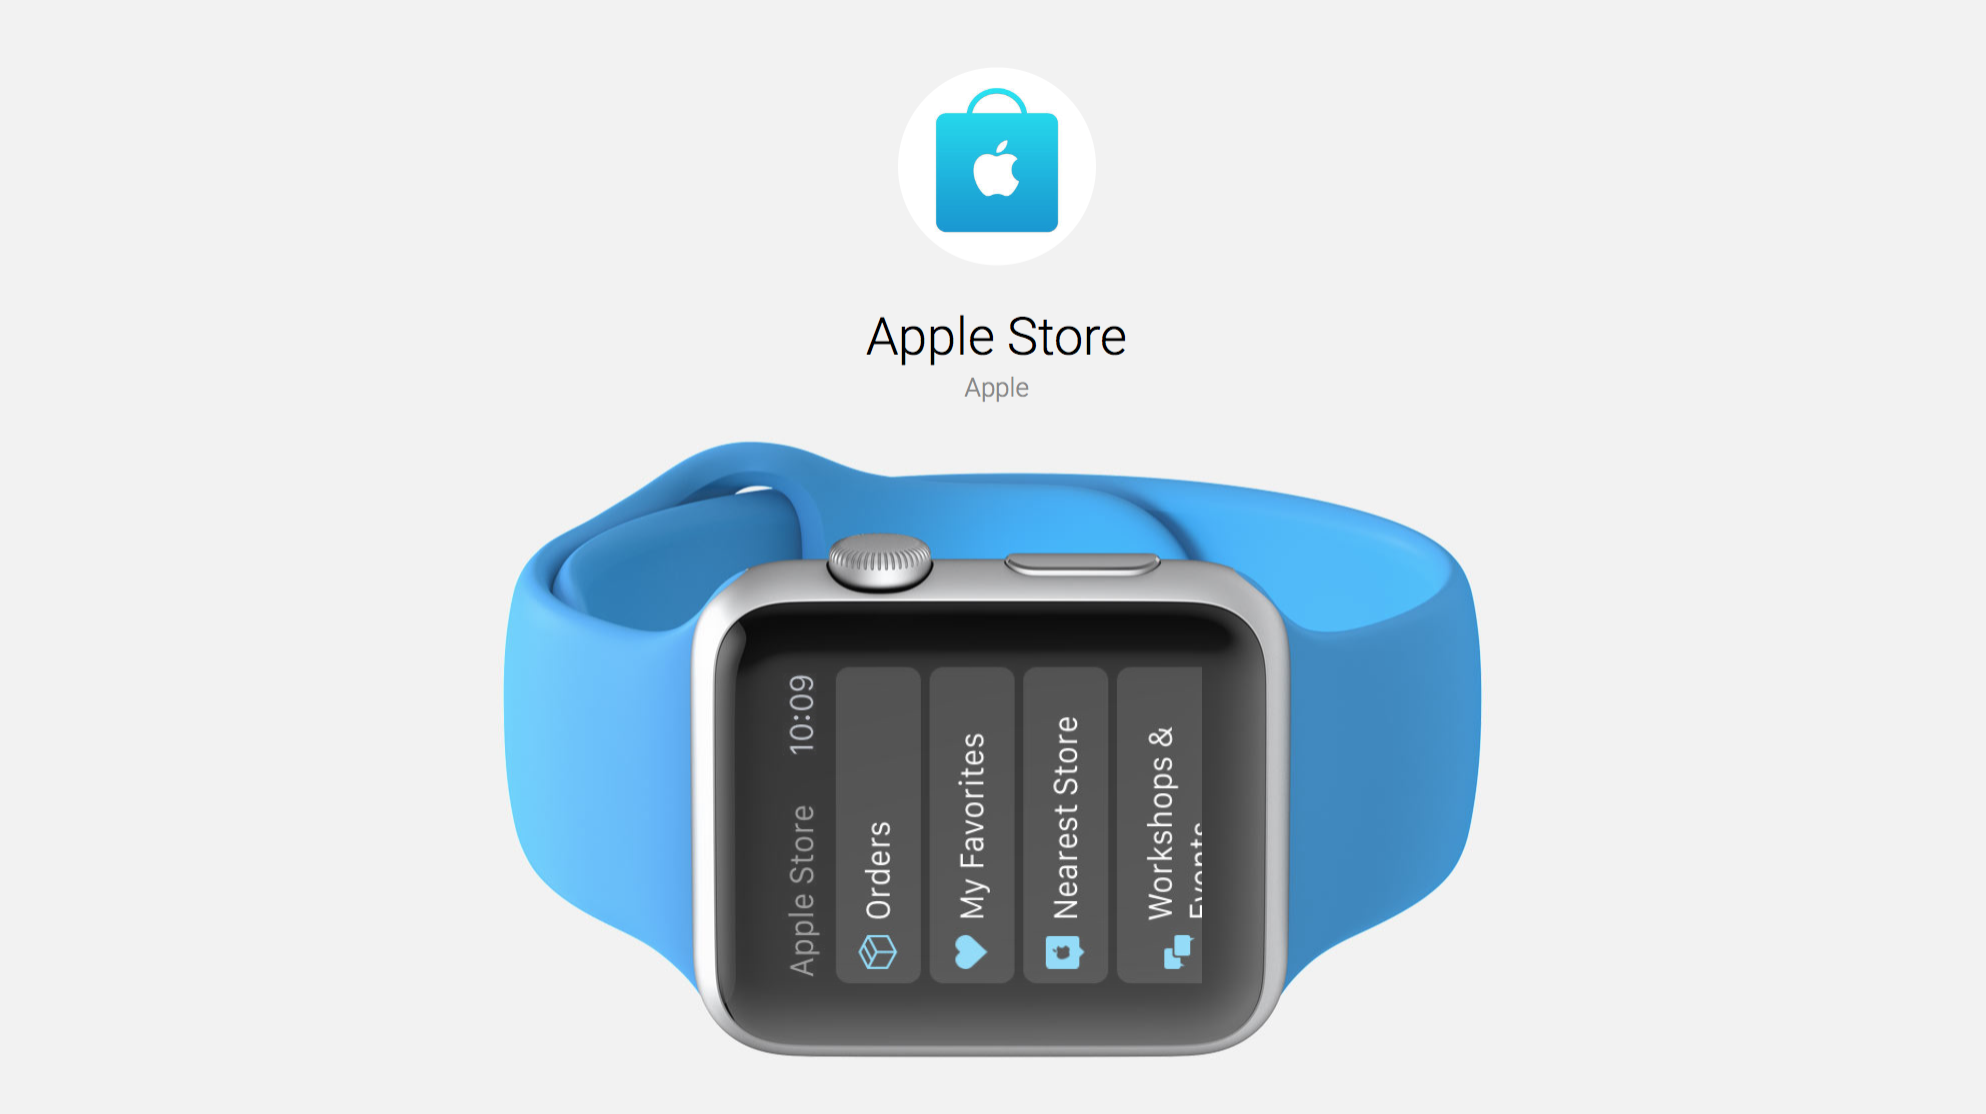 Apple Store App Updated for Easy Apple Watch Use